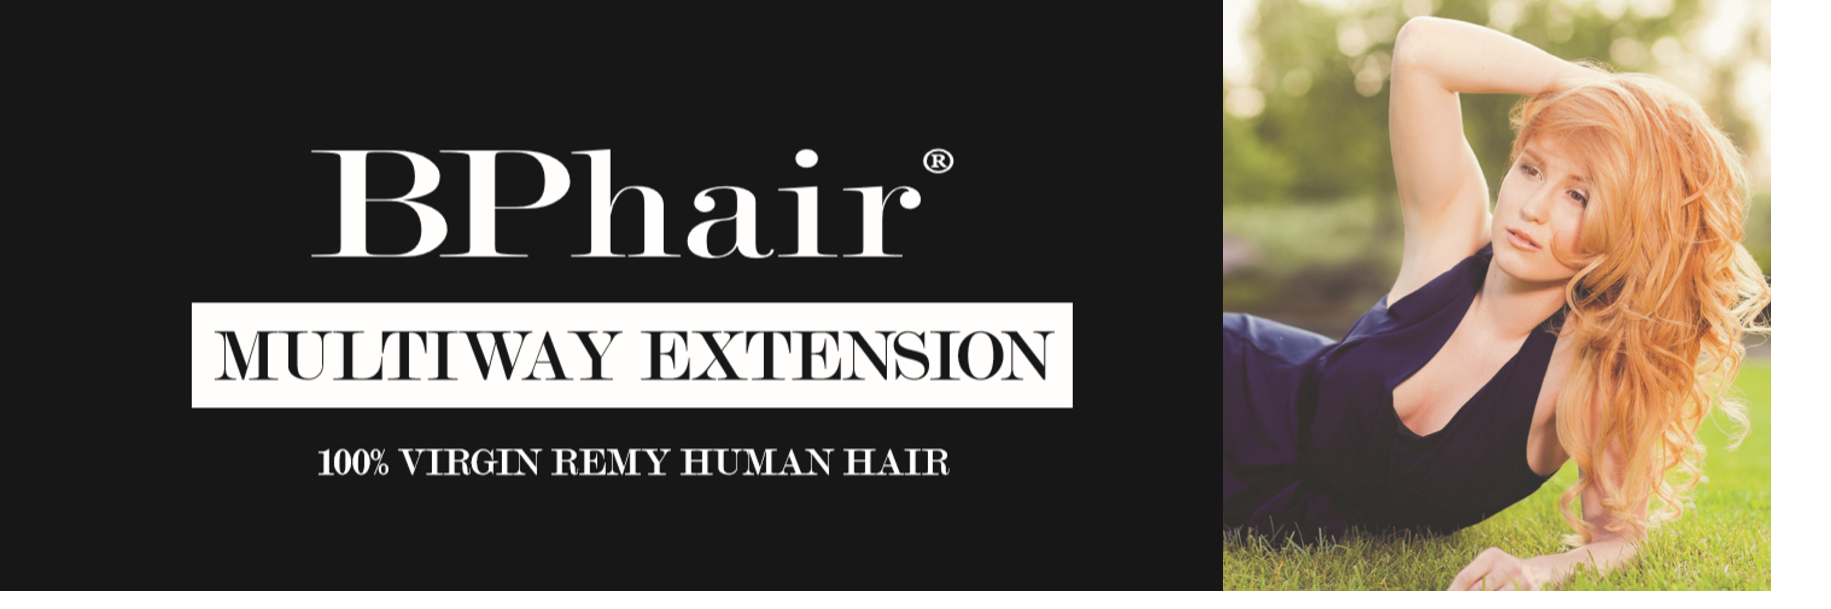 BPhair_Multiway_Extension_-_pidennyshiukset